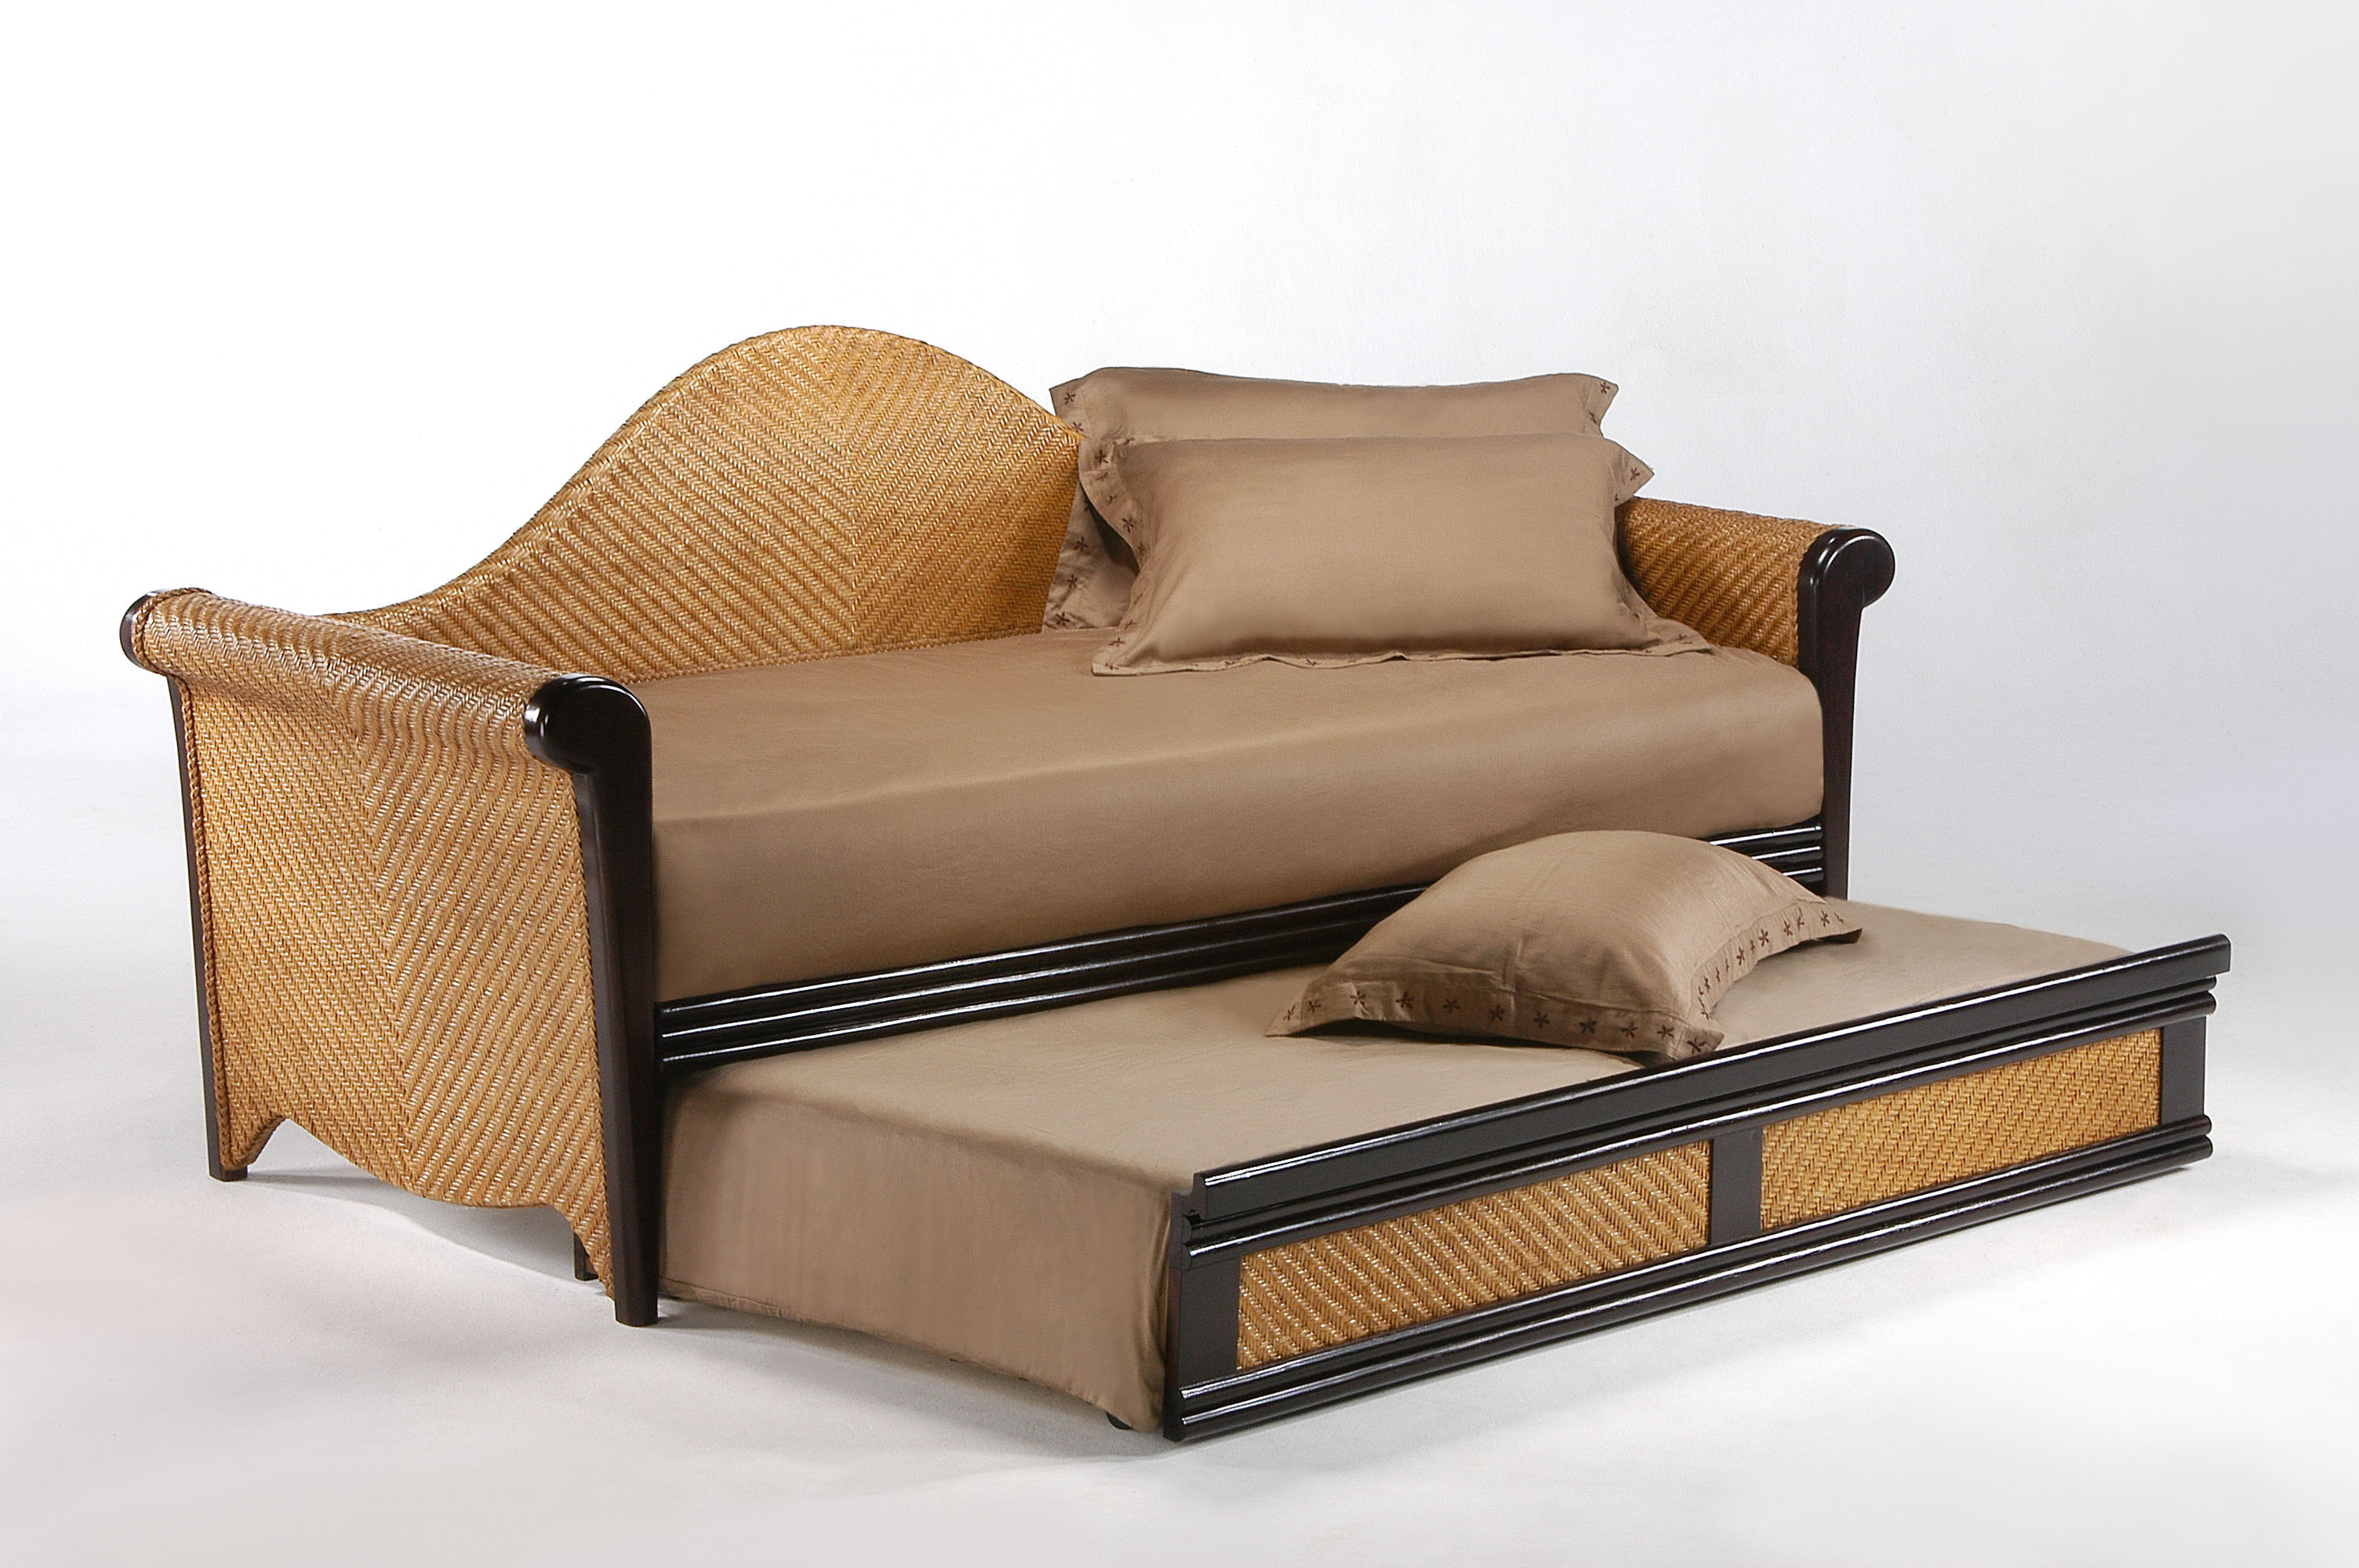 Rosebud daybed frame iowa city futon shop for Daybed with trundle